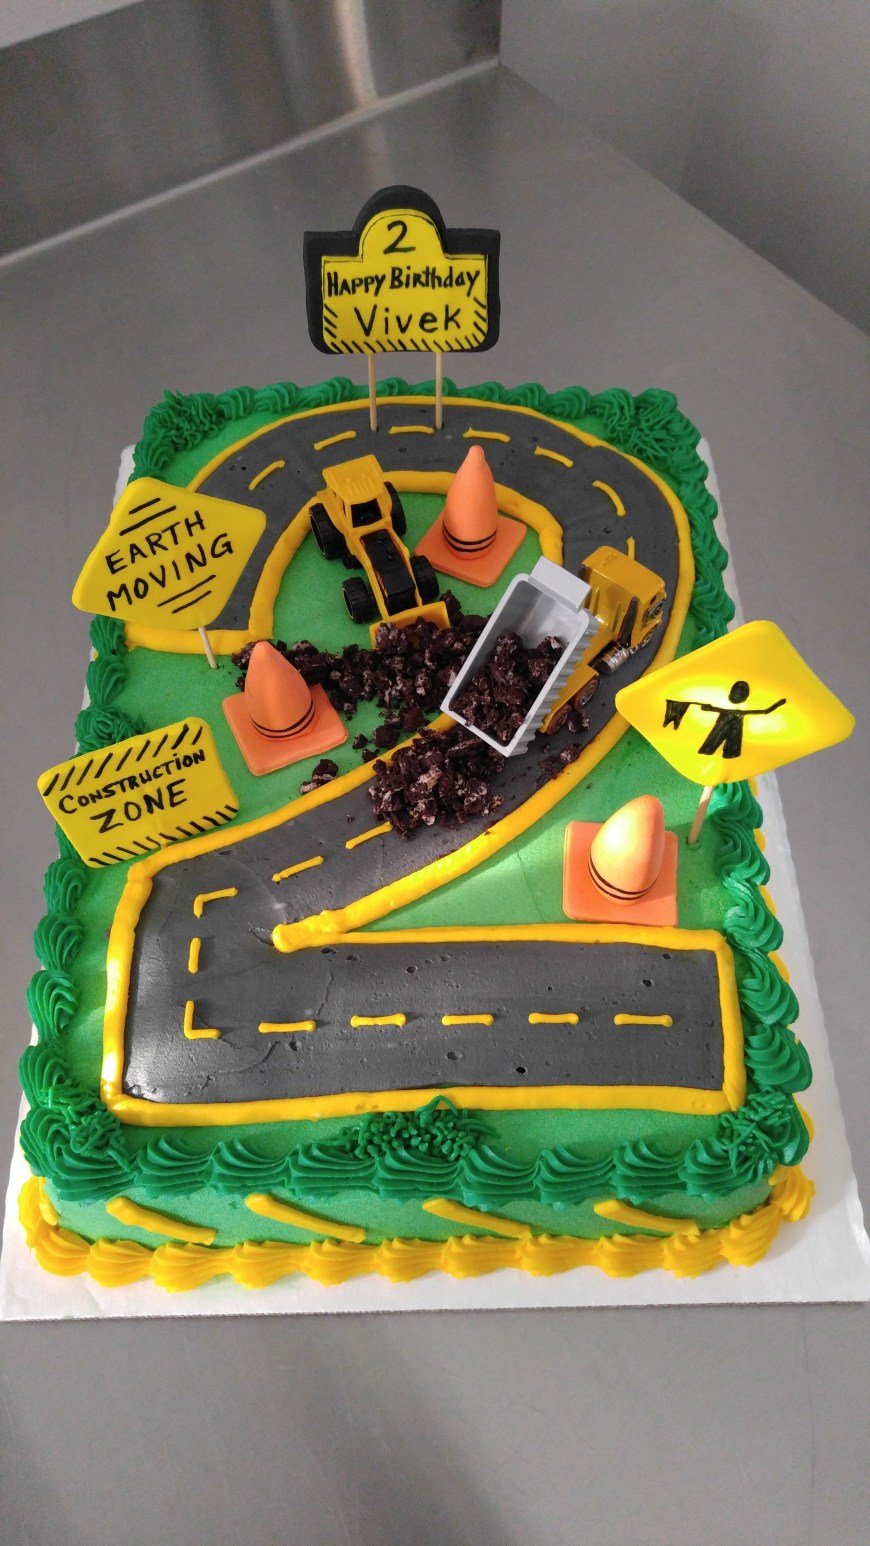 Truck Birthday Cake Construction Zone Birthday Cake For 2 Year Old Excavator Dump